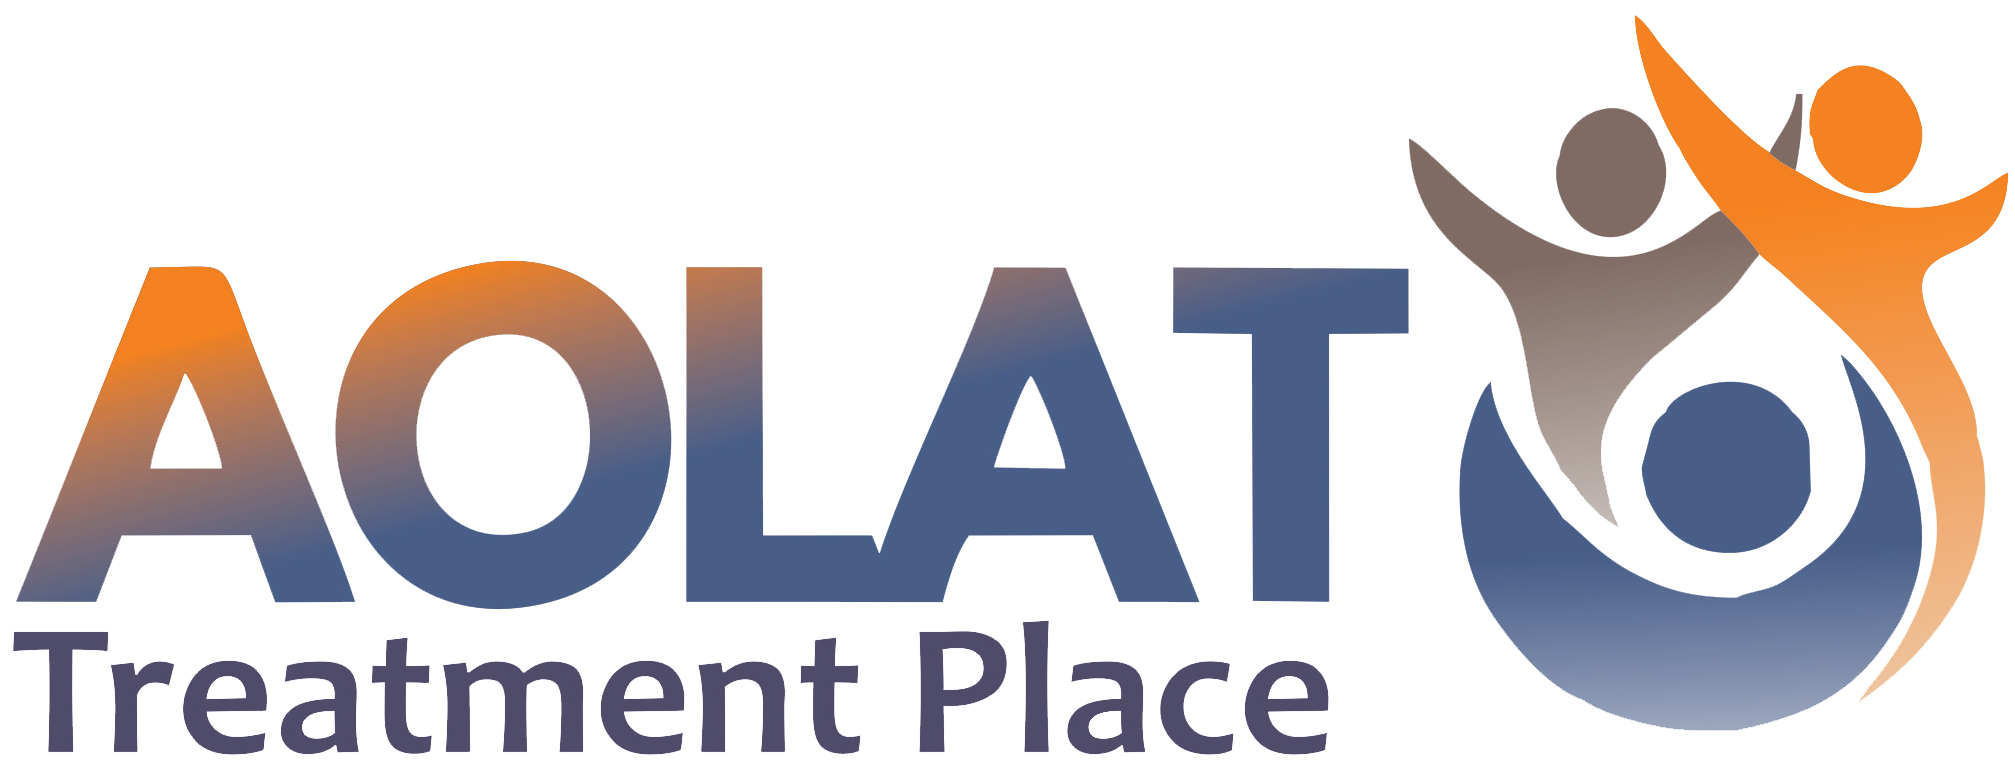 Welcome to AOLAT